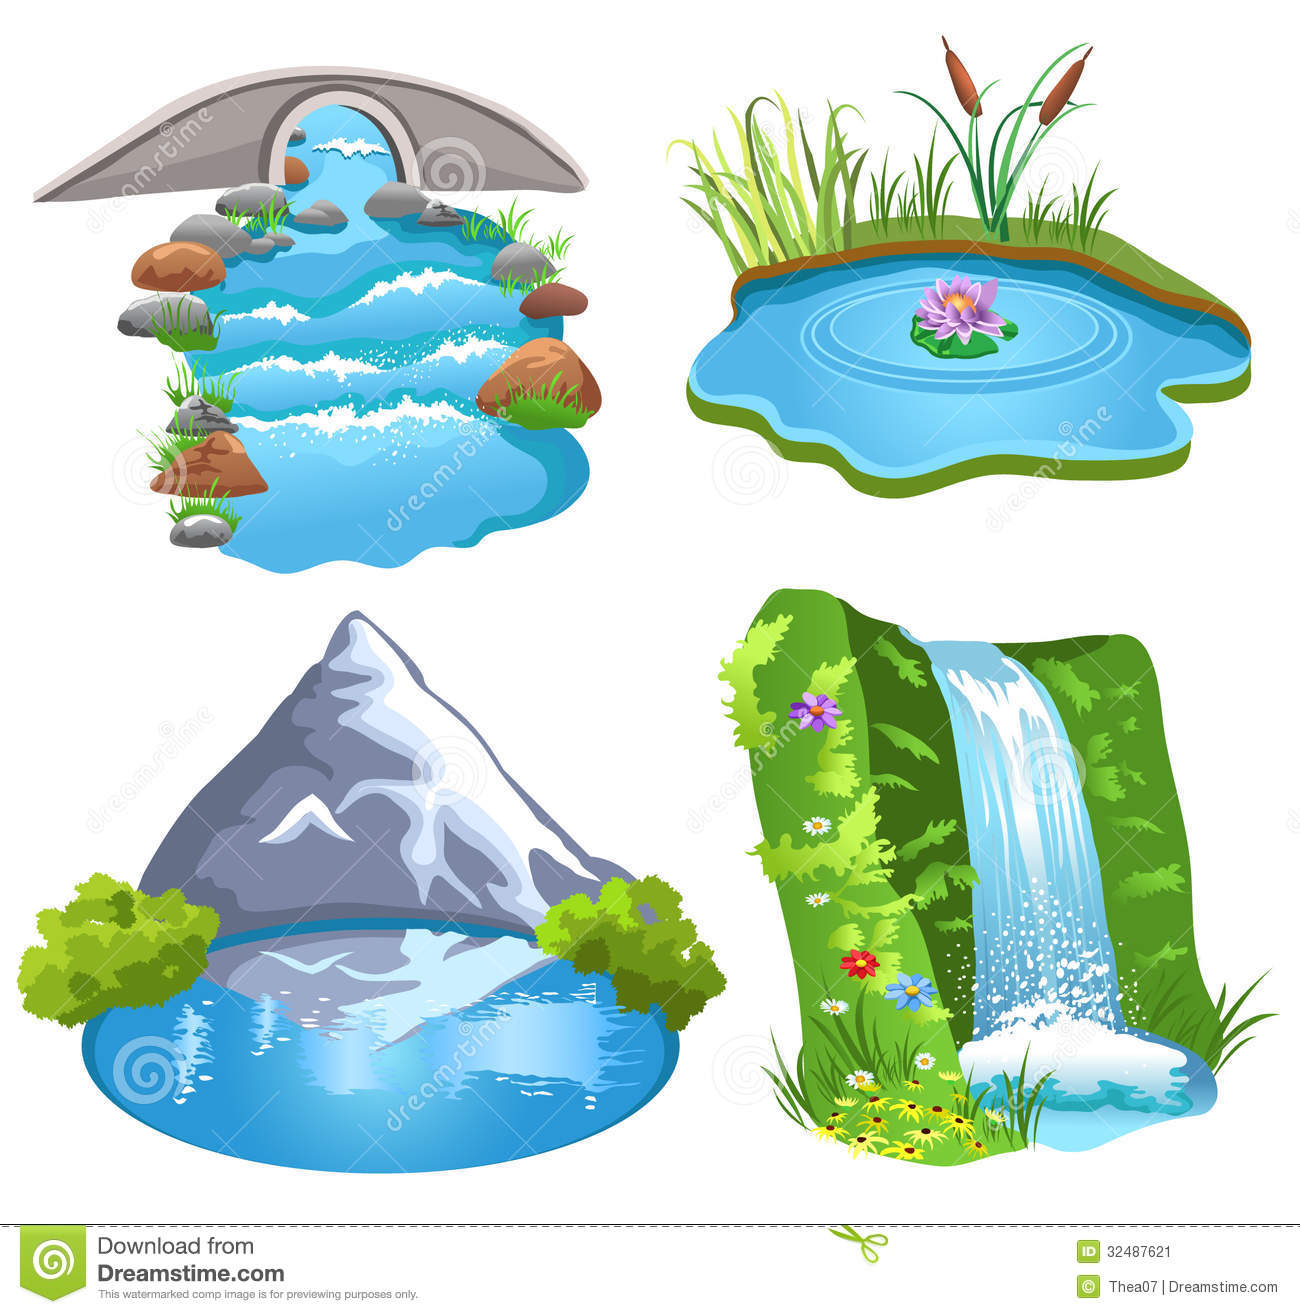 Bodies of water clipart 4 » Clipart Station.